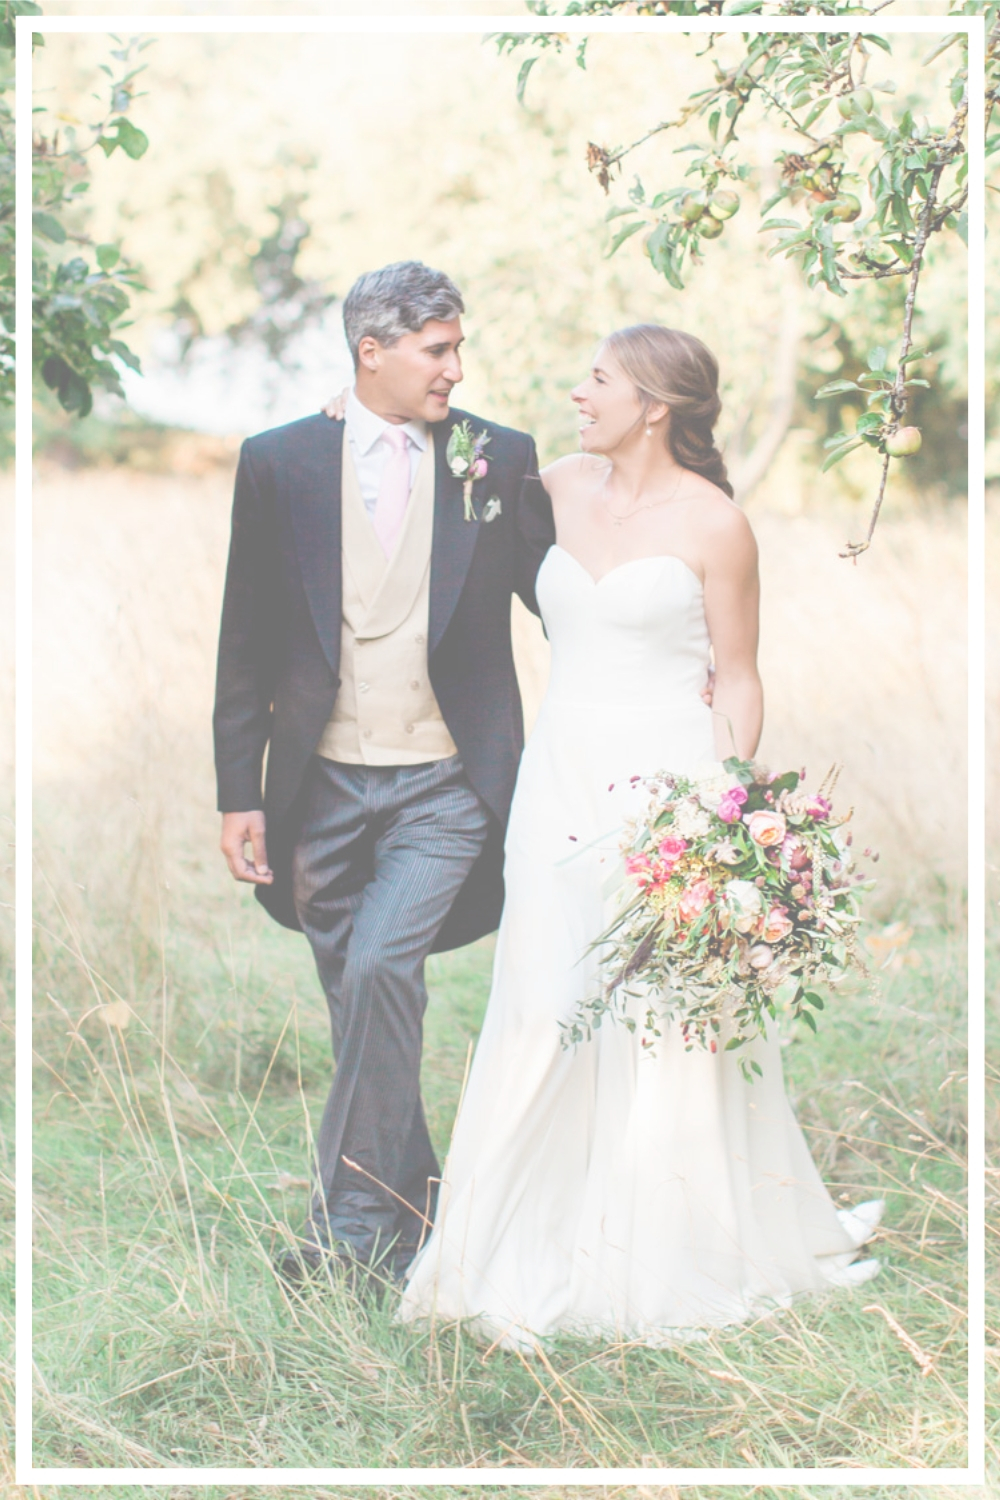 A COUNTRY WEDDING -